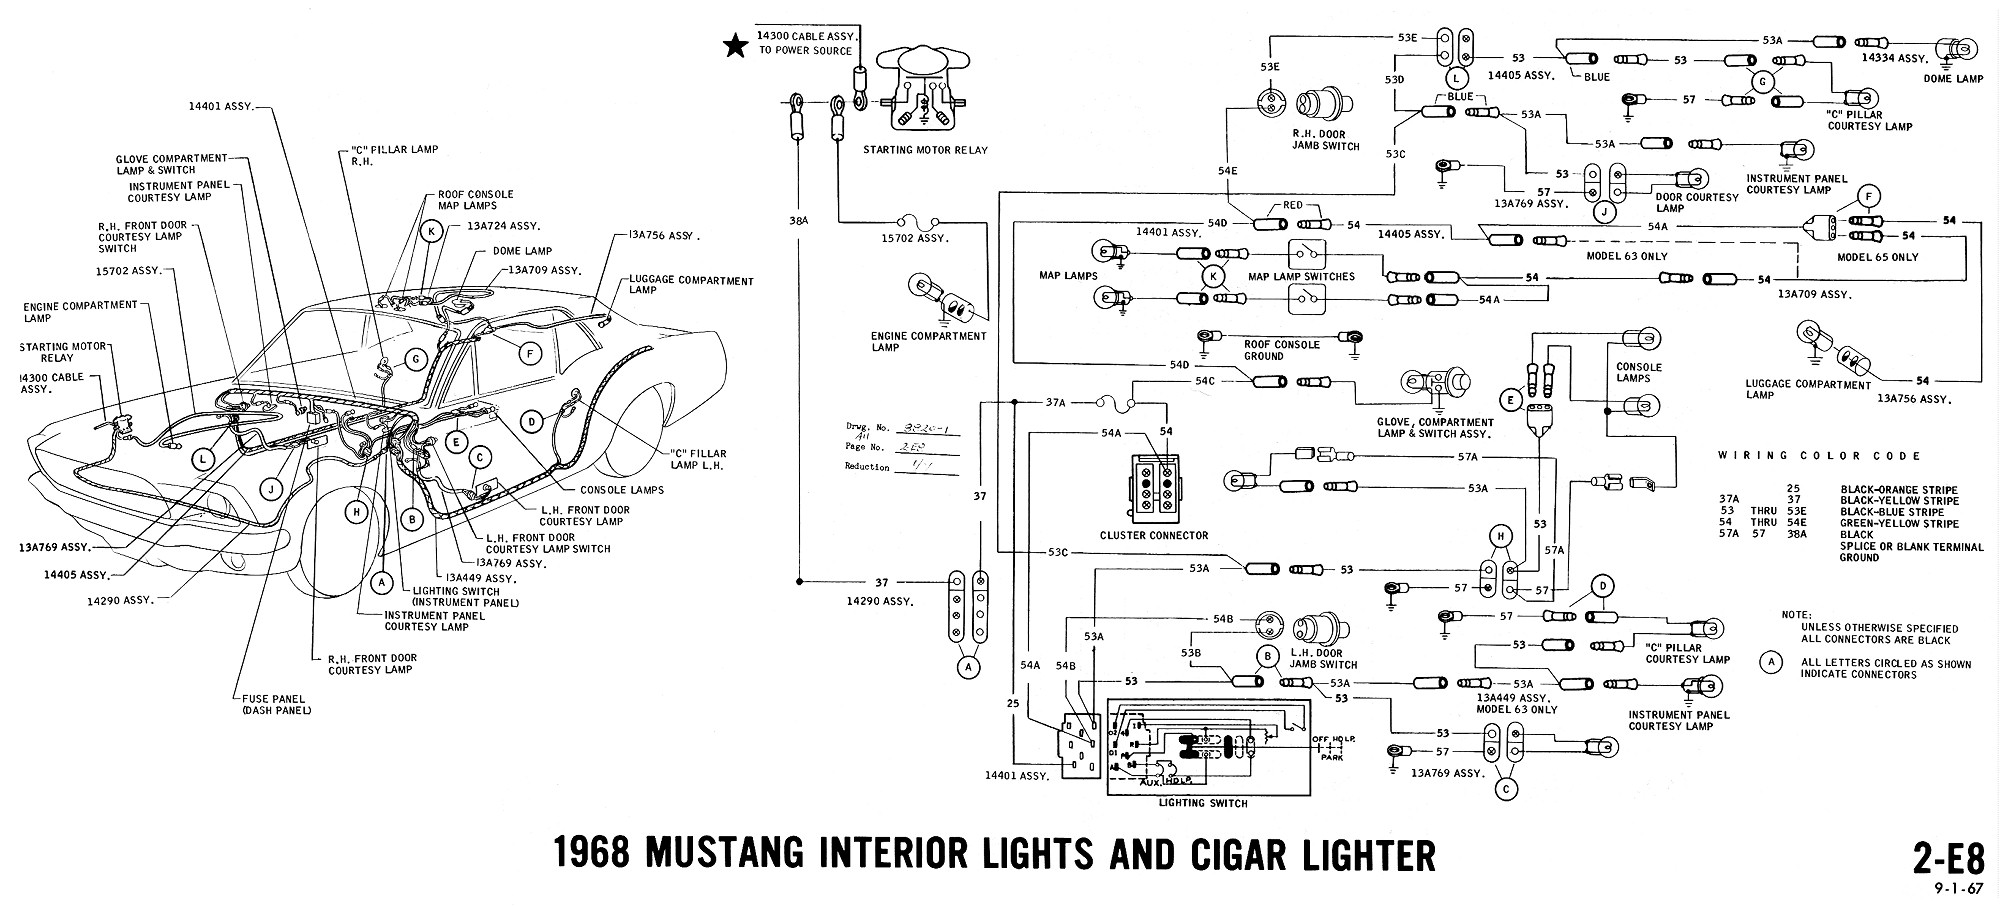 1990 Corvette Wiring Diagram. Corvette. Wiring Diagram Images